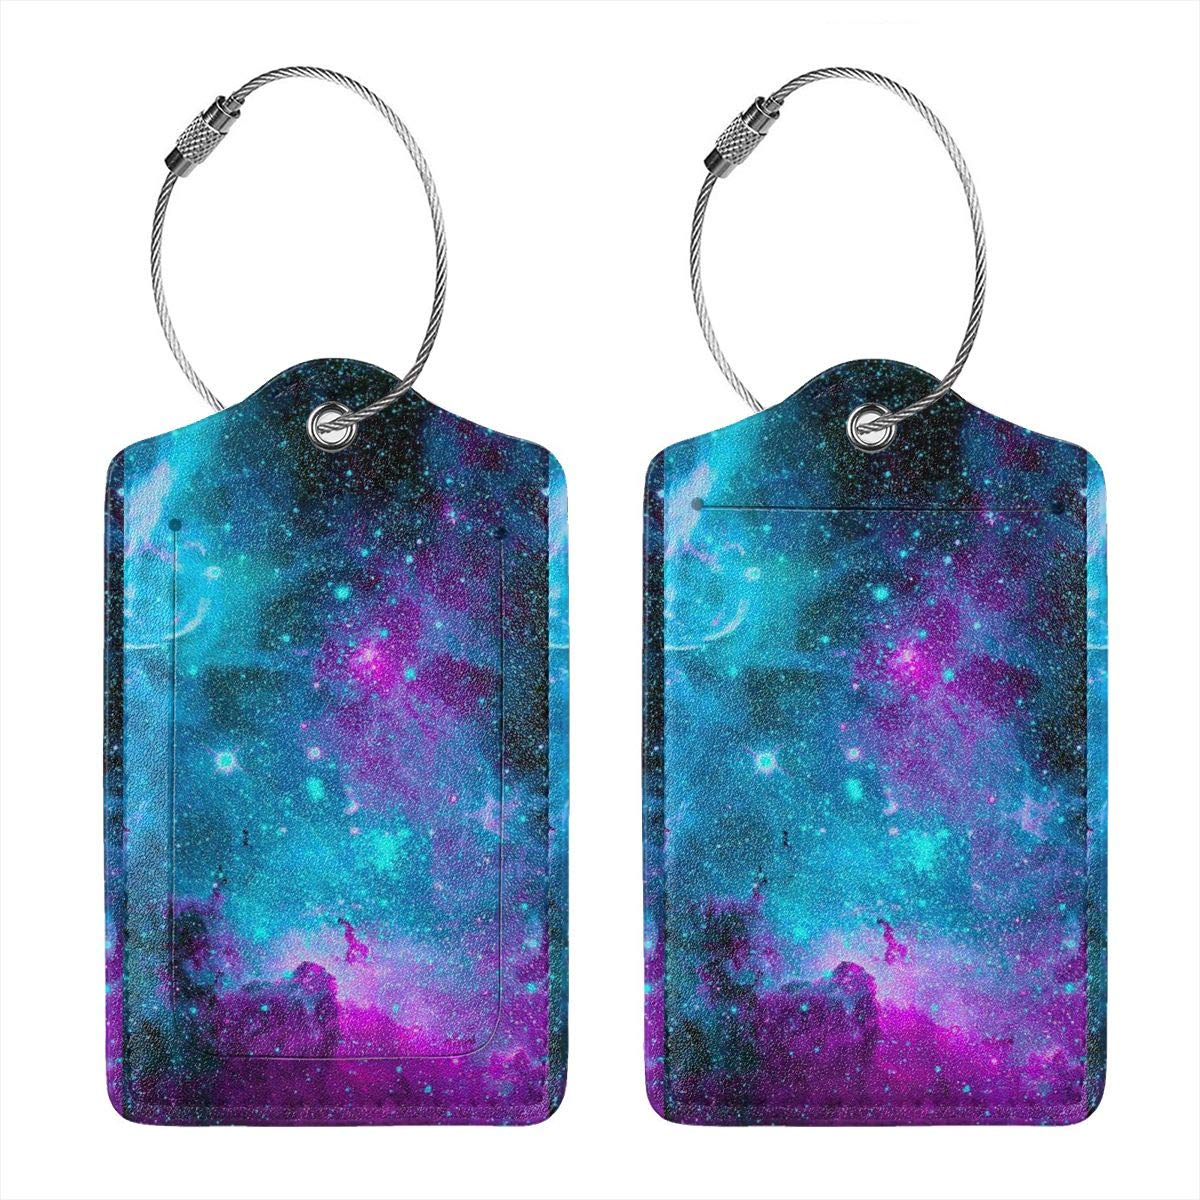 Key Tags for Christmas Birthday Couples Gift Purple Galaxy Sky 2.7 x 4.6 Blank Tag Leather Luggage Tags Full Privacy Cover and Stainless Steel Loop 1 2 4 Pcs Set